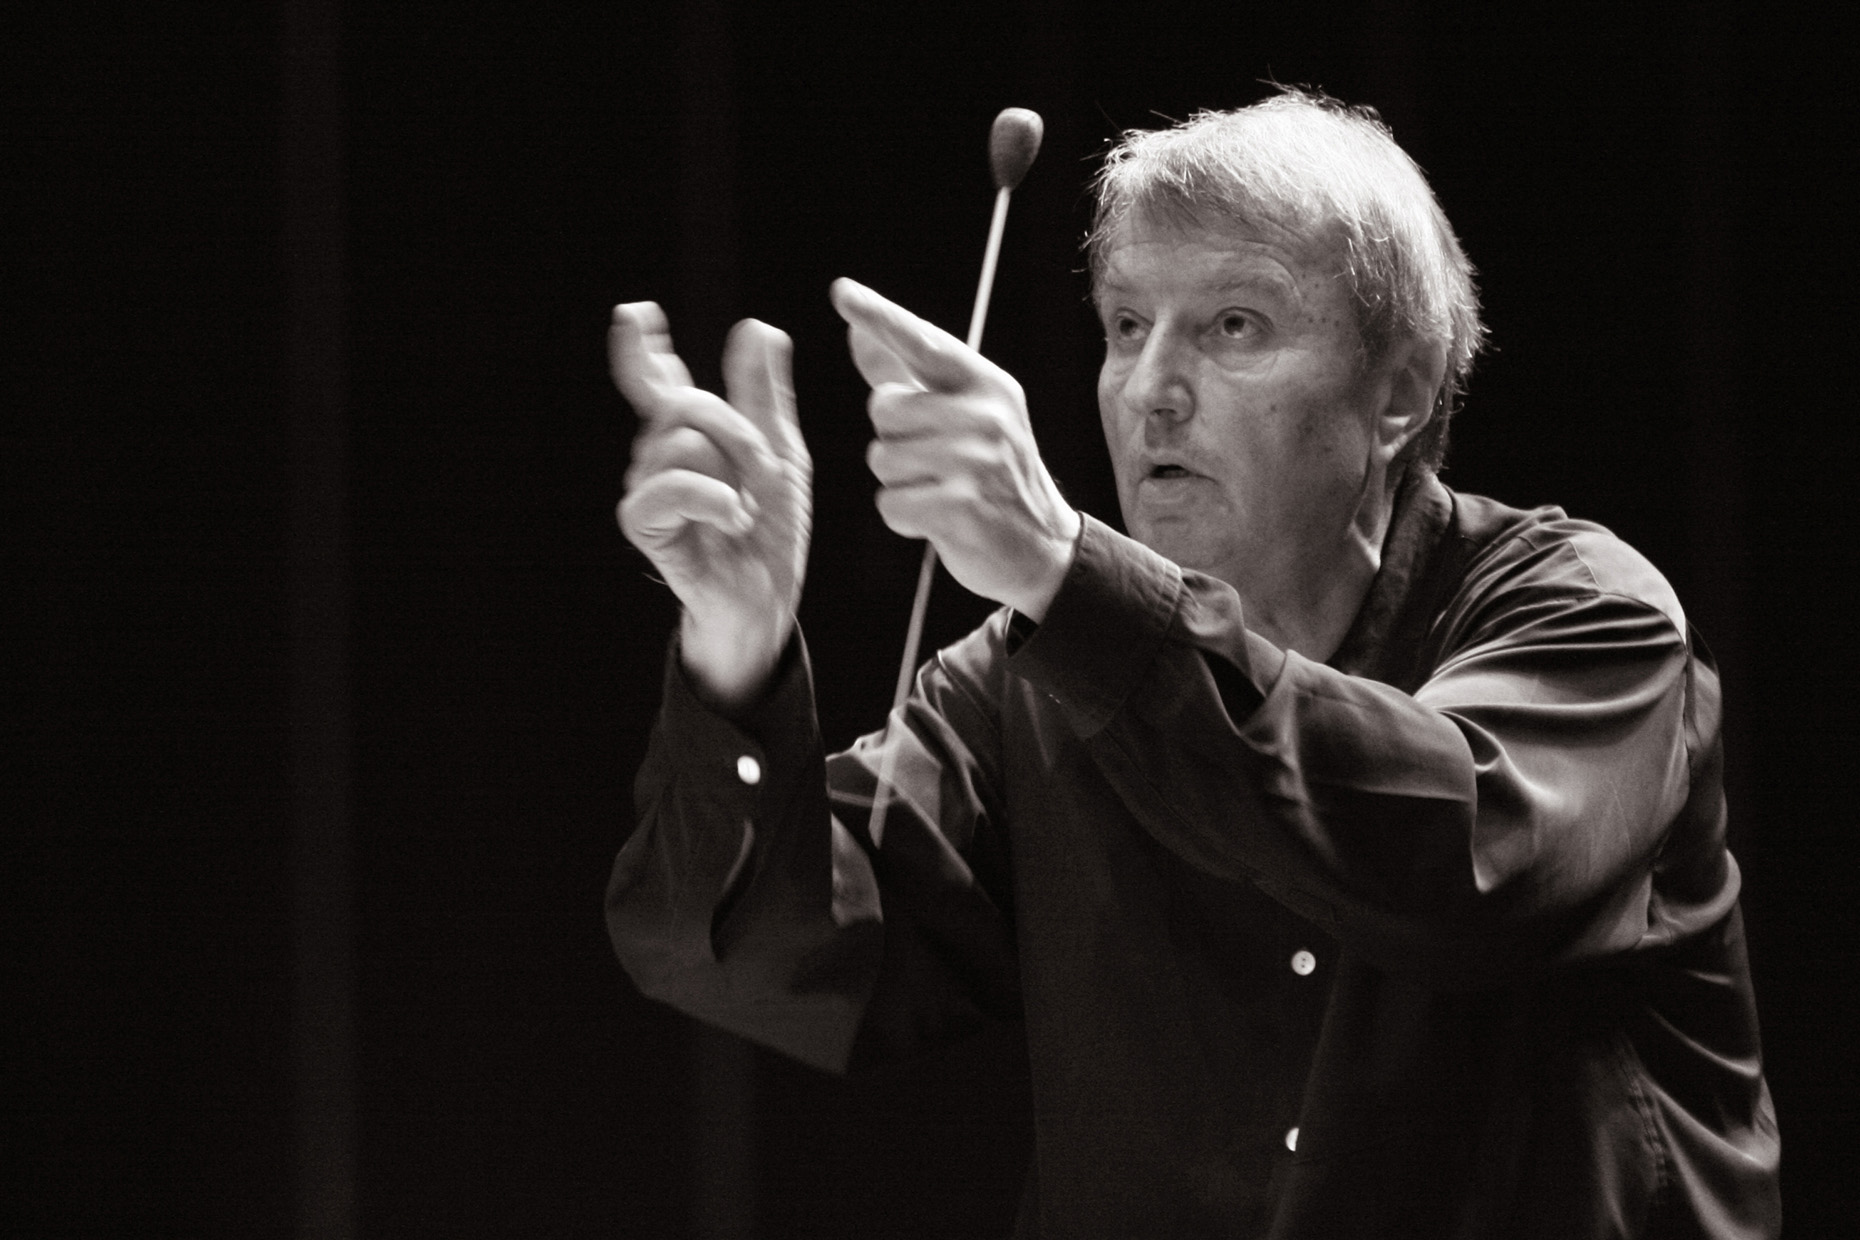 Orchestra conductor Philippe Bender